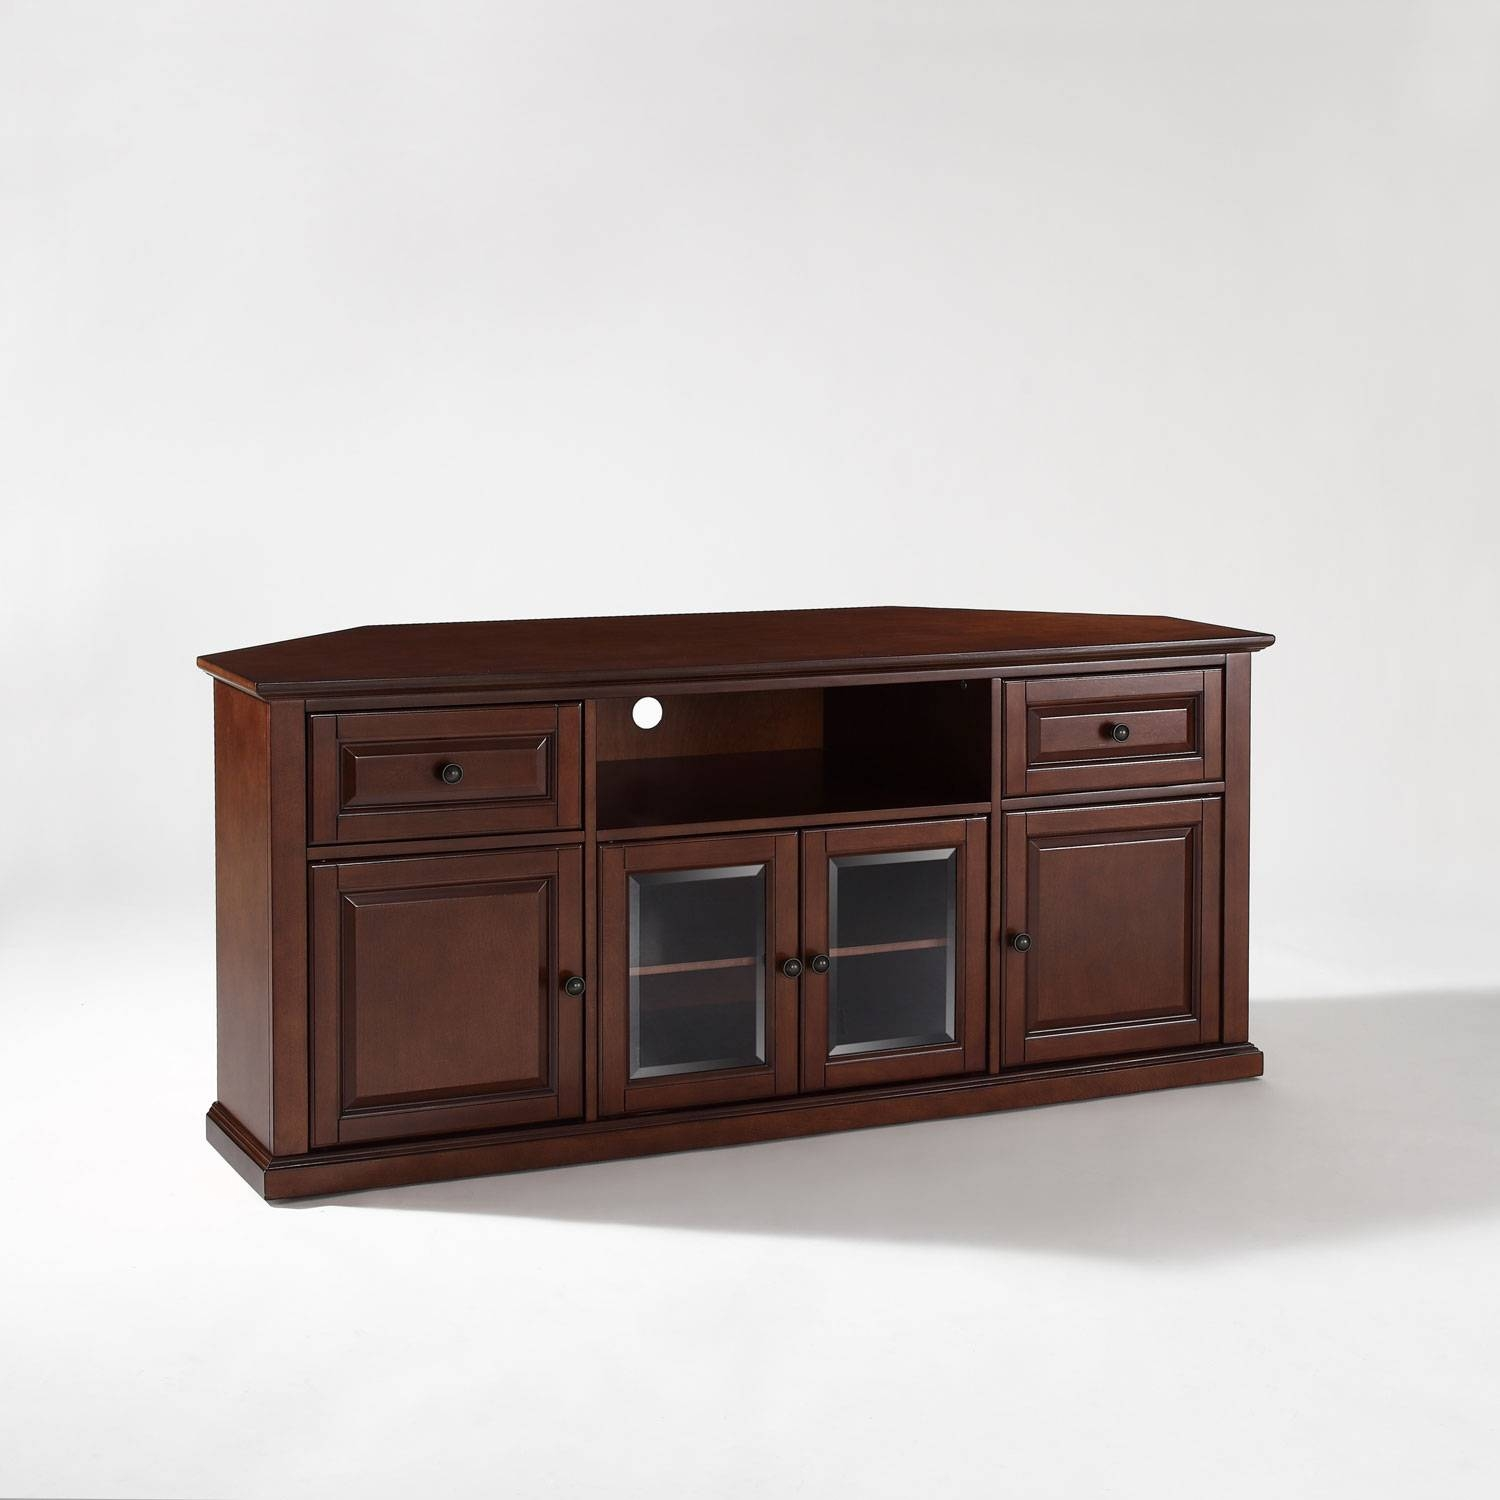 60 Inch Corner Tv Stand In Vintage Mahogany Crosley Furniture Pertaining To Rustic 60 Inch Tv Stands (Gallery 14 of 15)